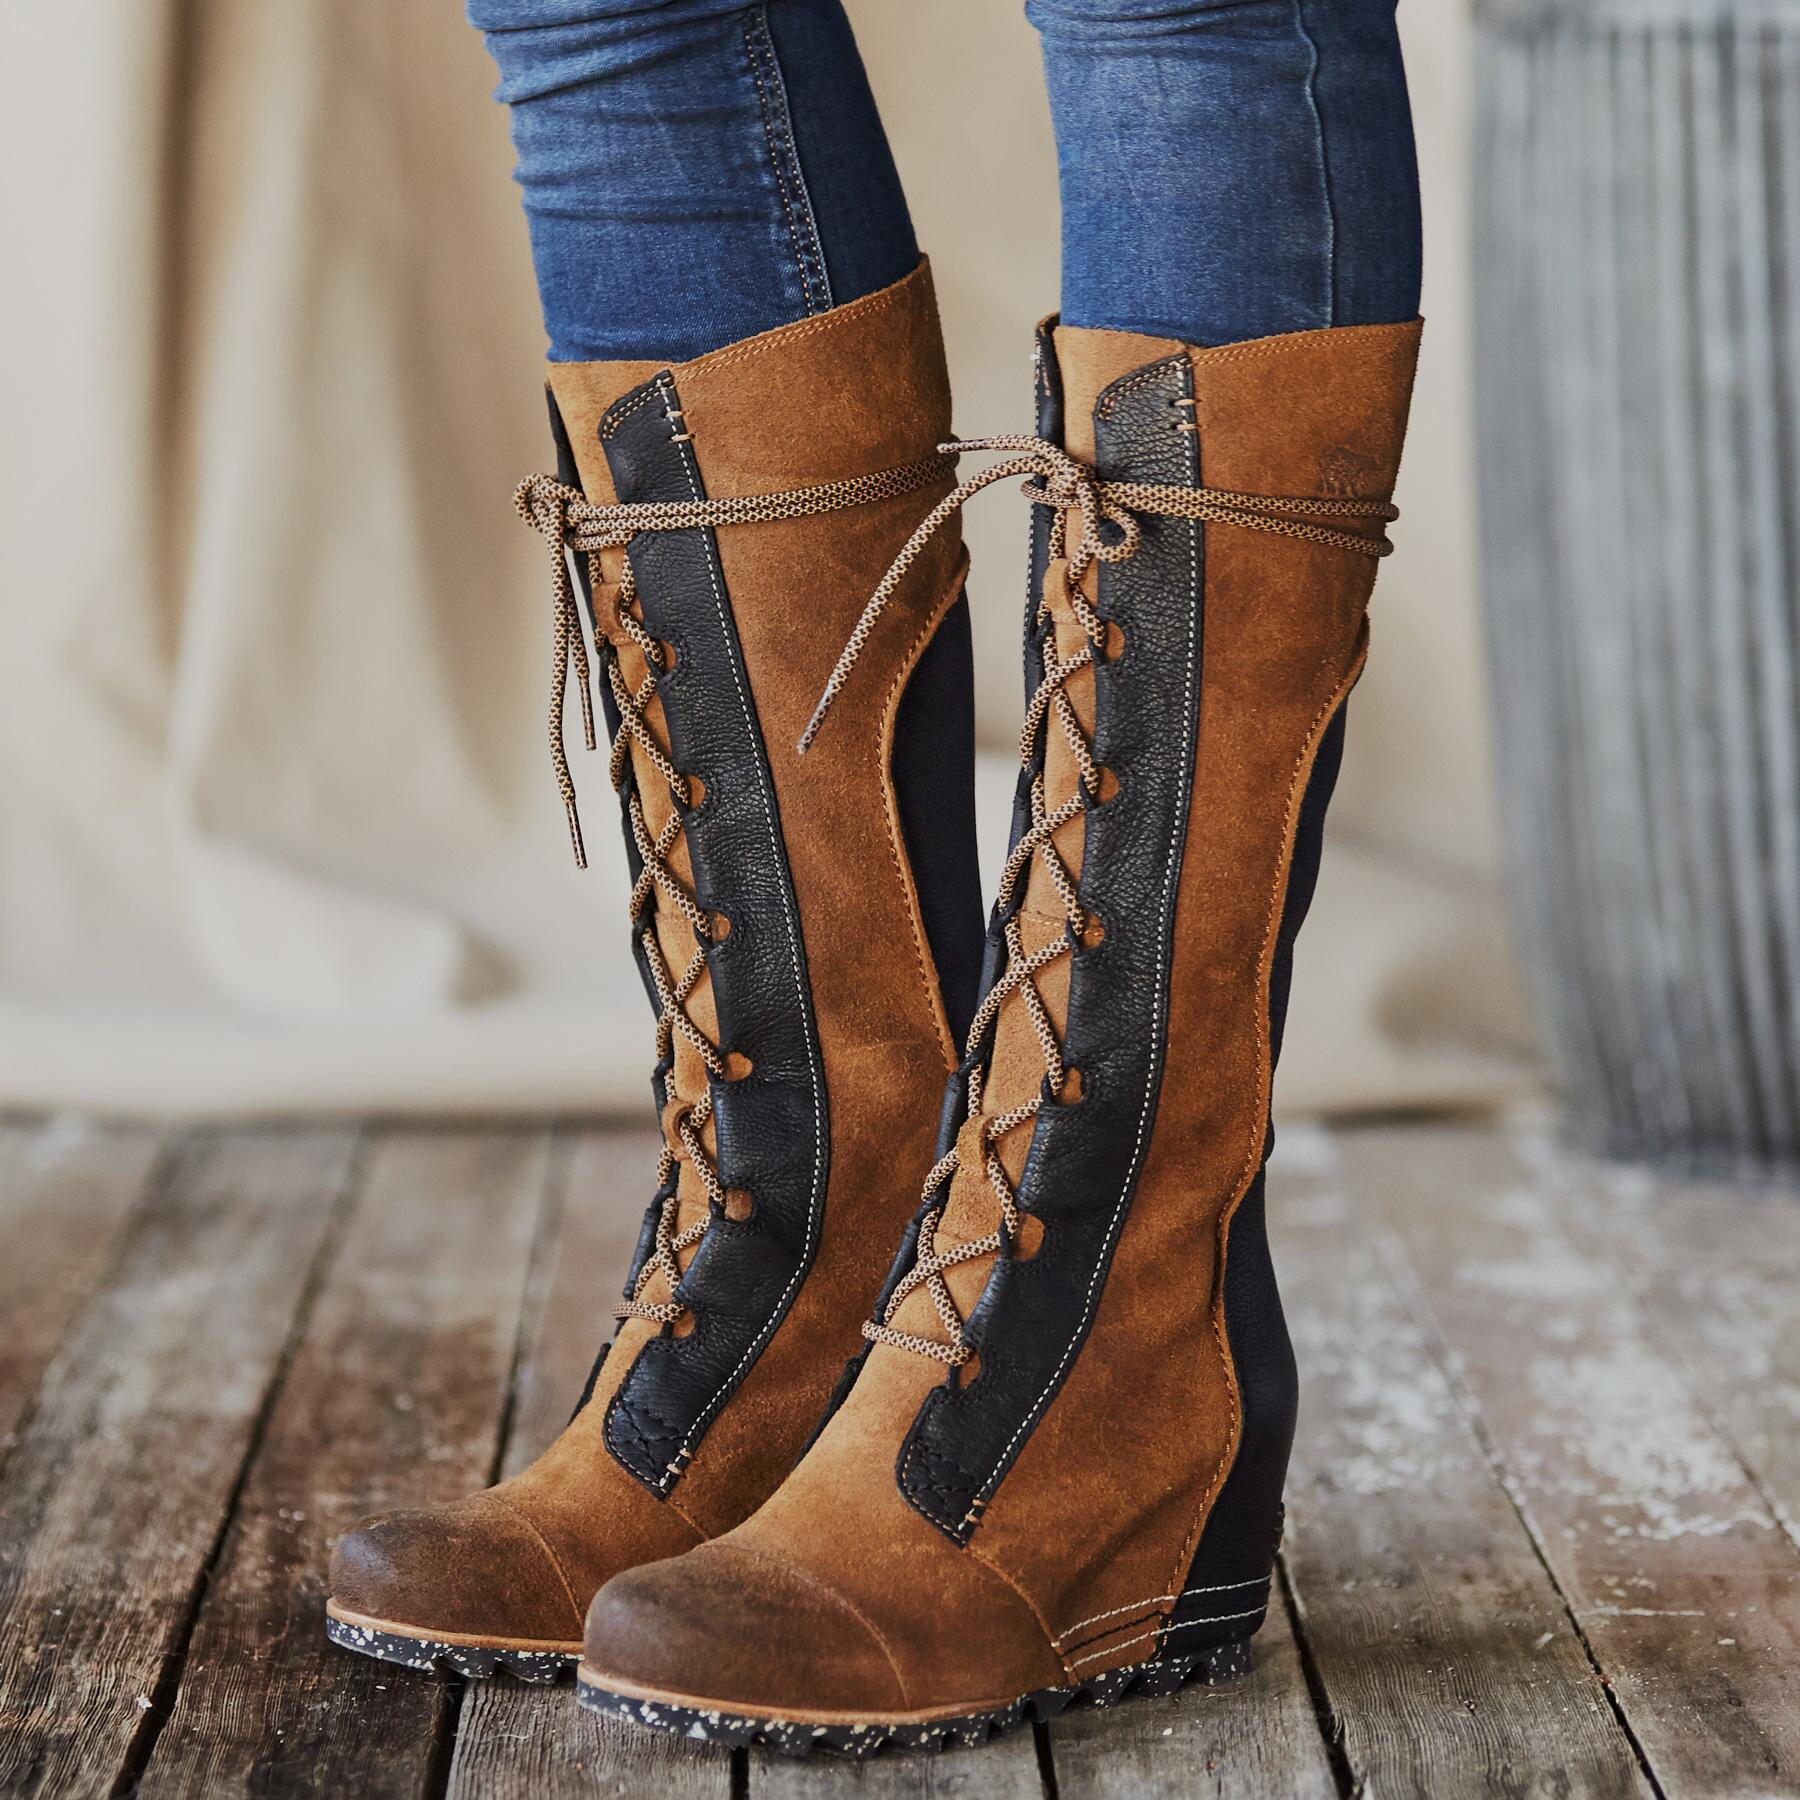 c1037a57ba3 CATE THE GREAT BOOTS BY SOREL  View 1